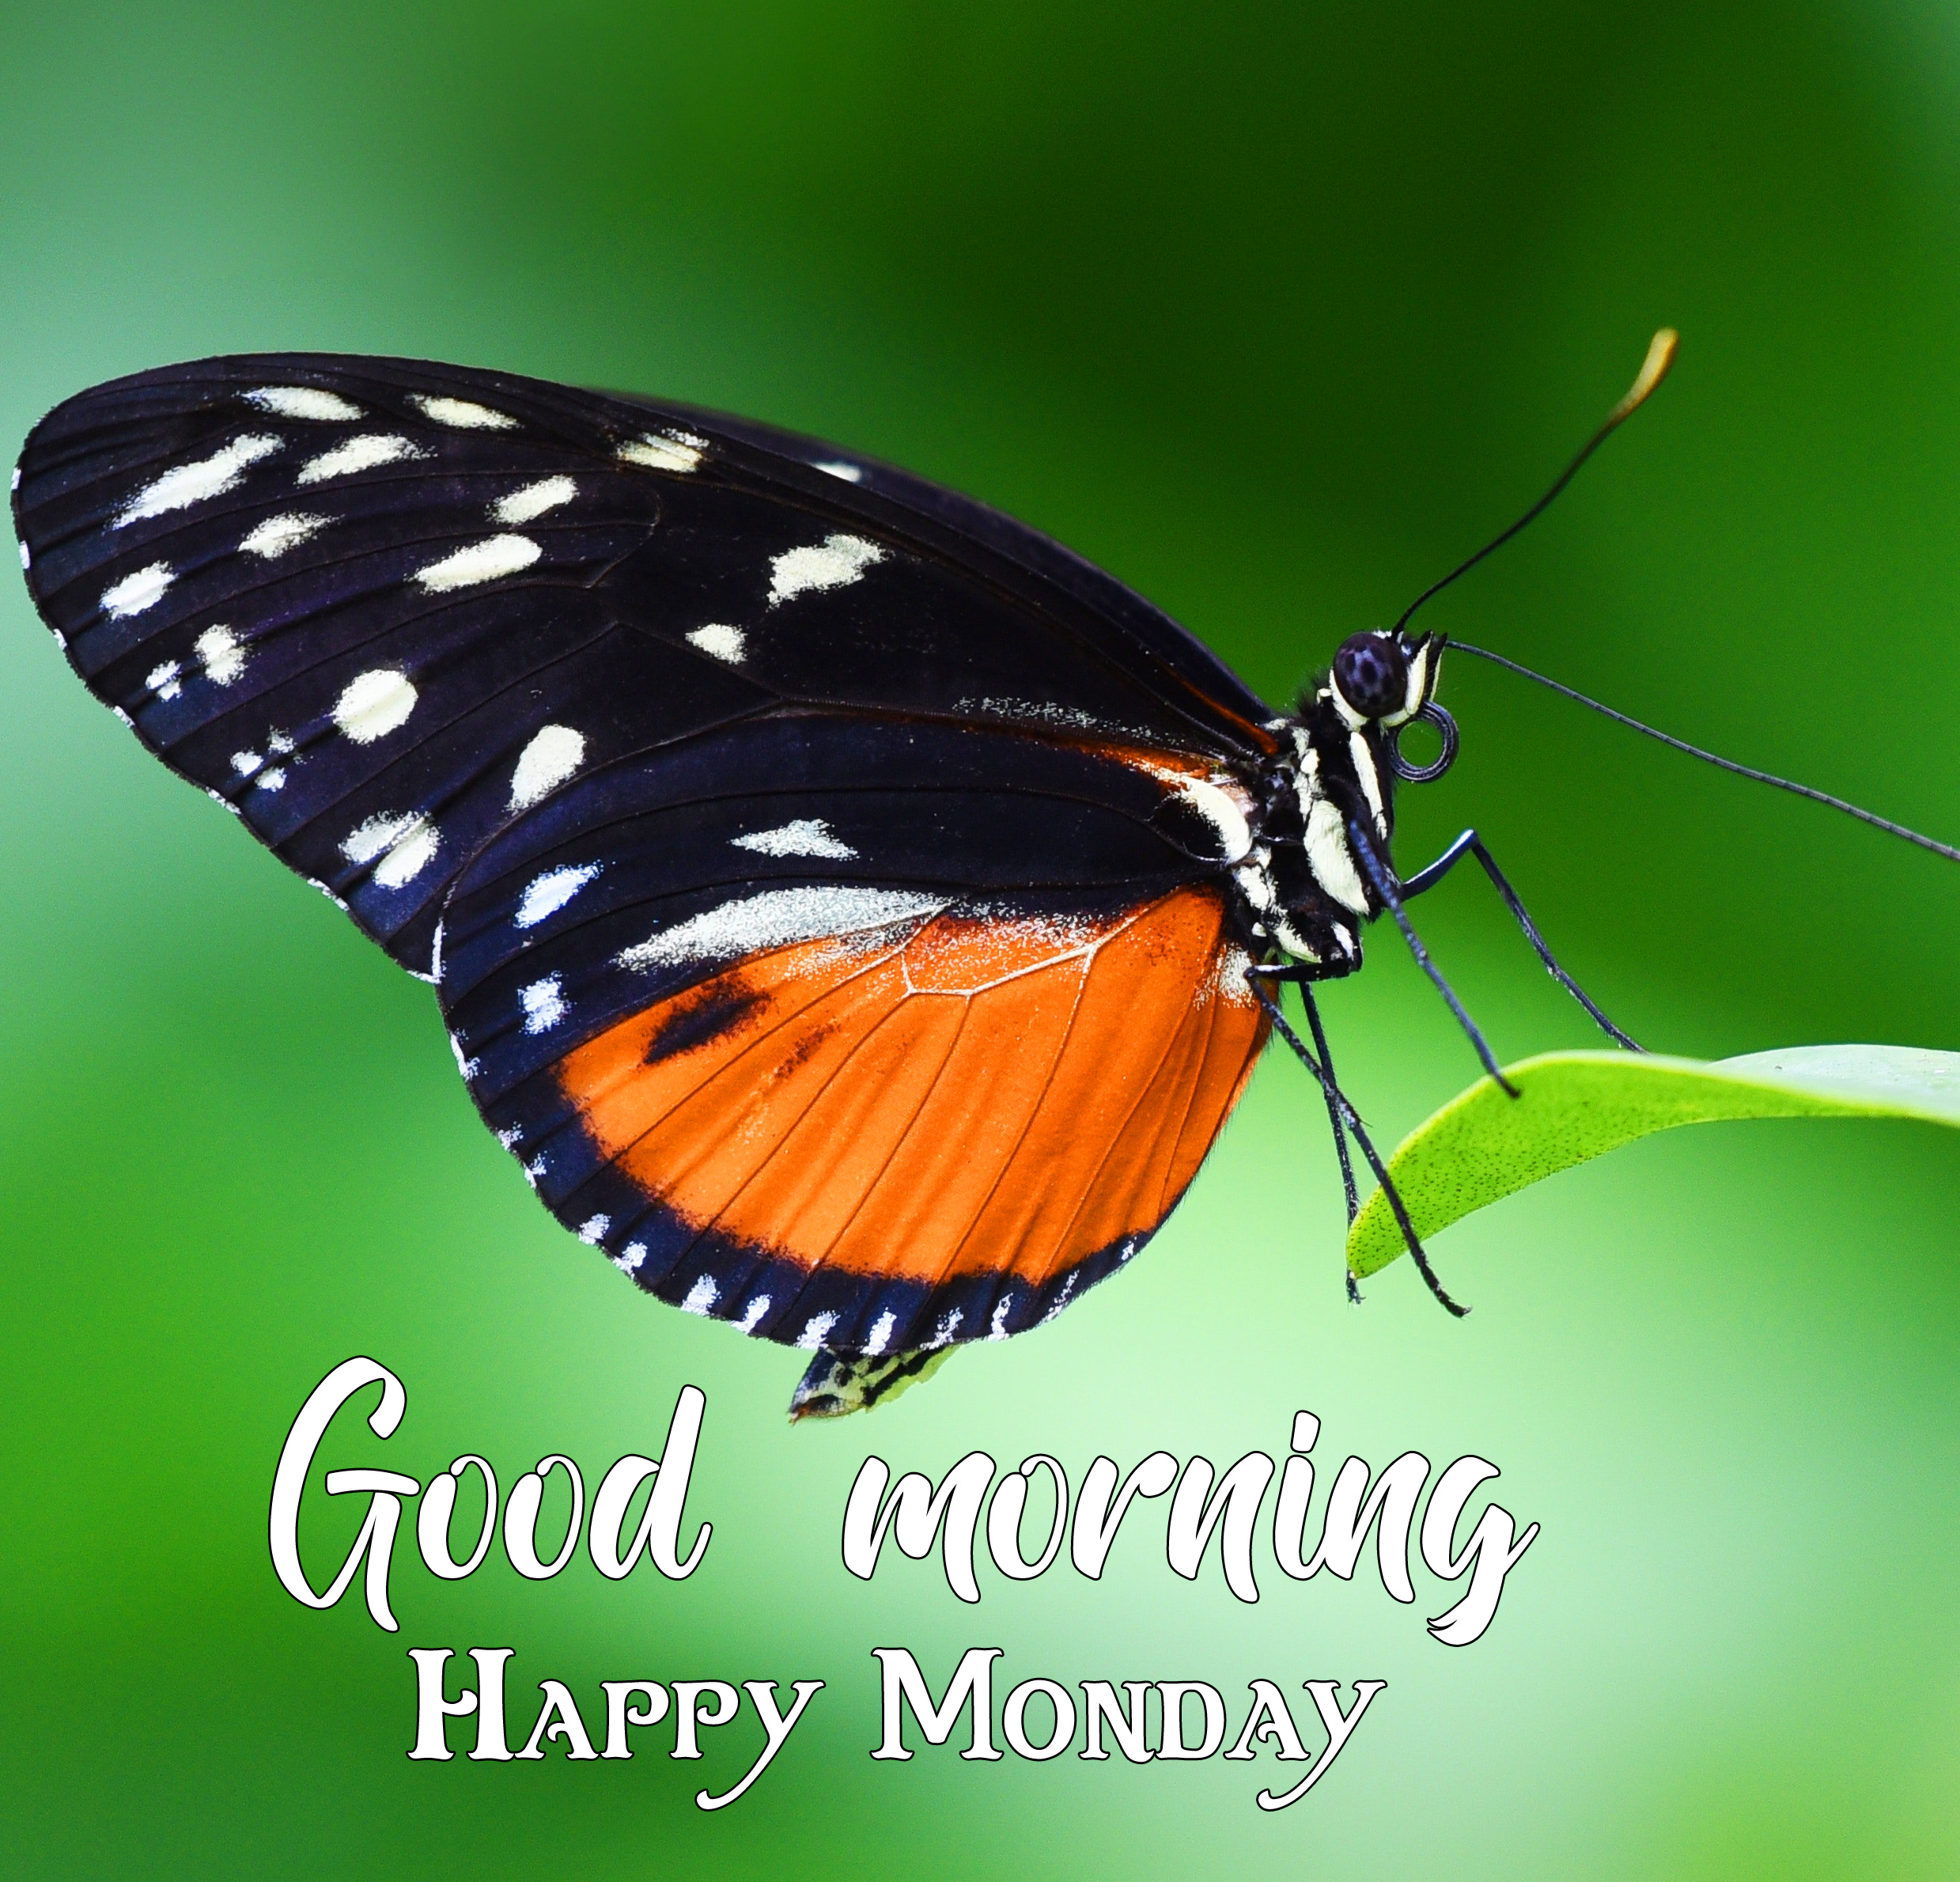 HD Butterfly Good Morning Happy Monday Image